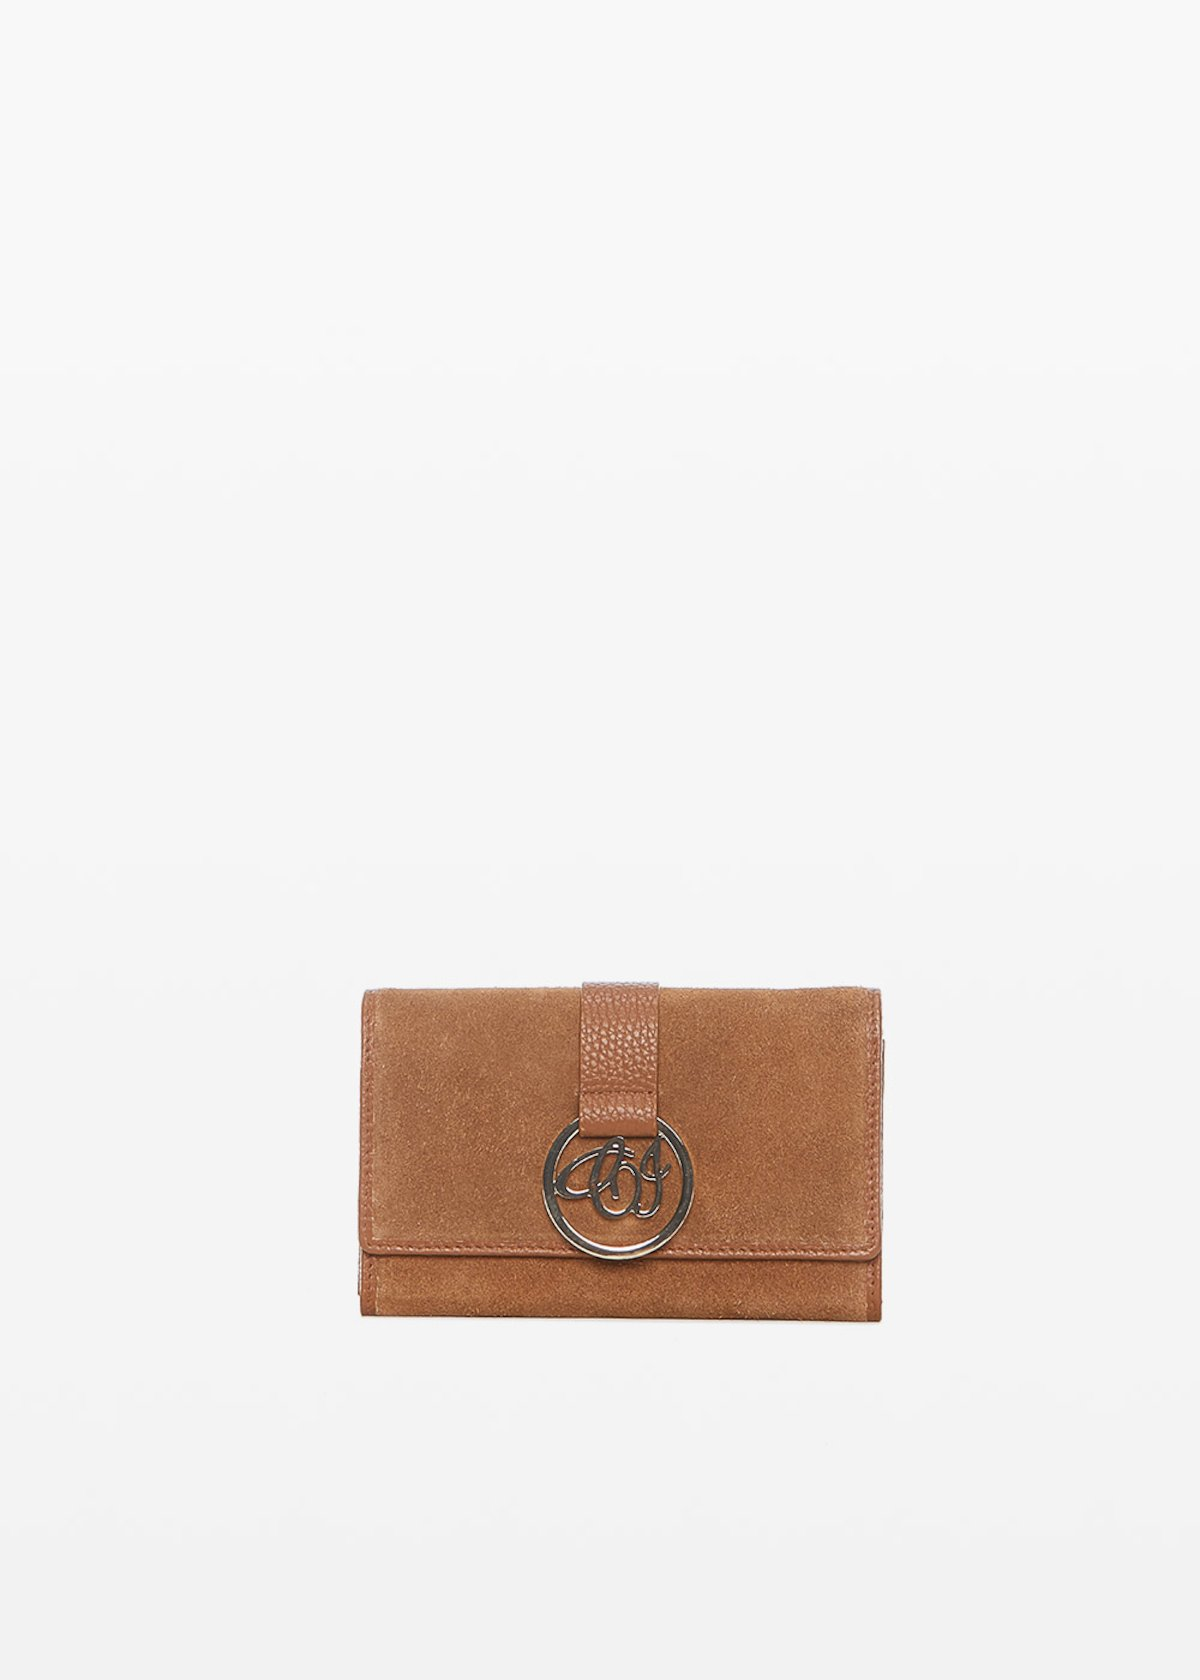 Pollie Wallet with logo